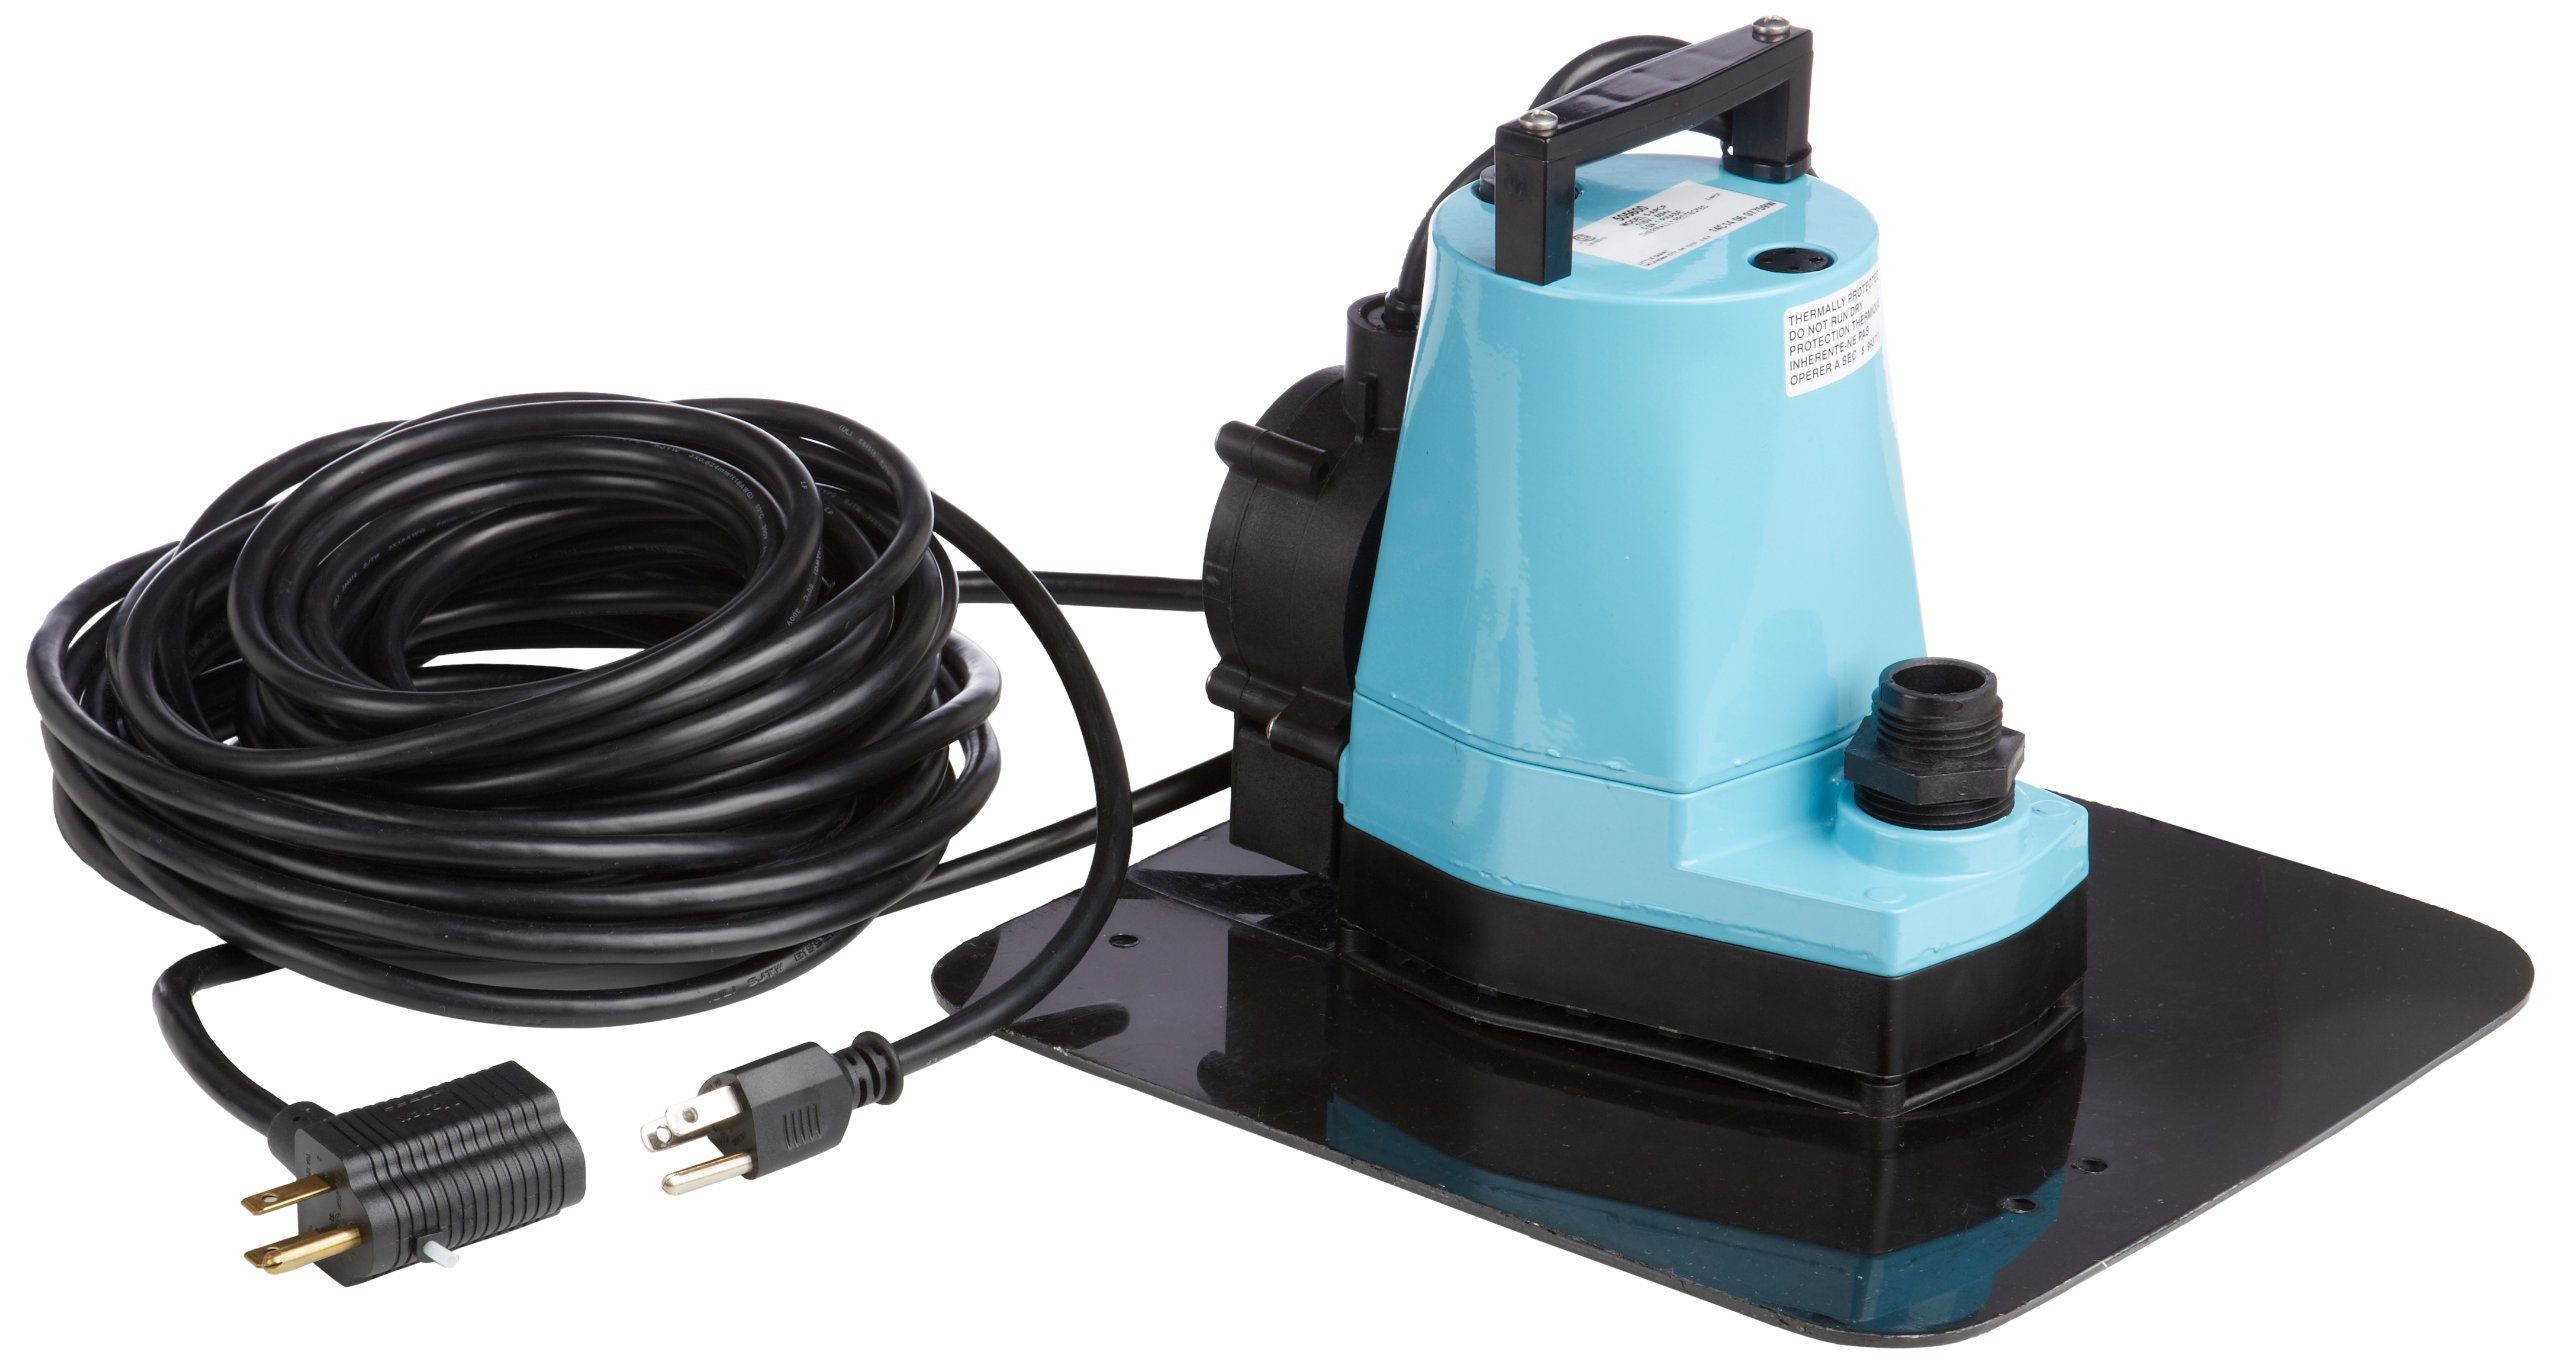 Little Giant 5-APCP Automatic Pool Cover Pump, Submersible Pump, 1/6 HP, 115V by LITTLE GIANT